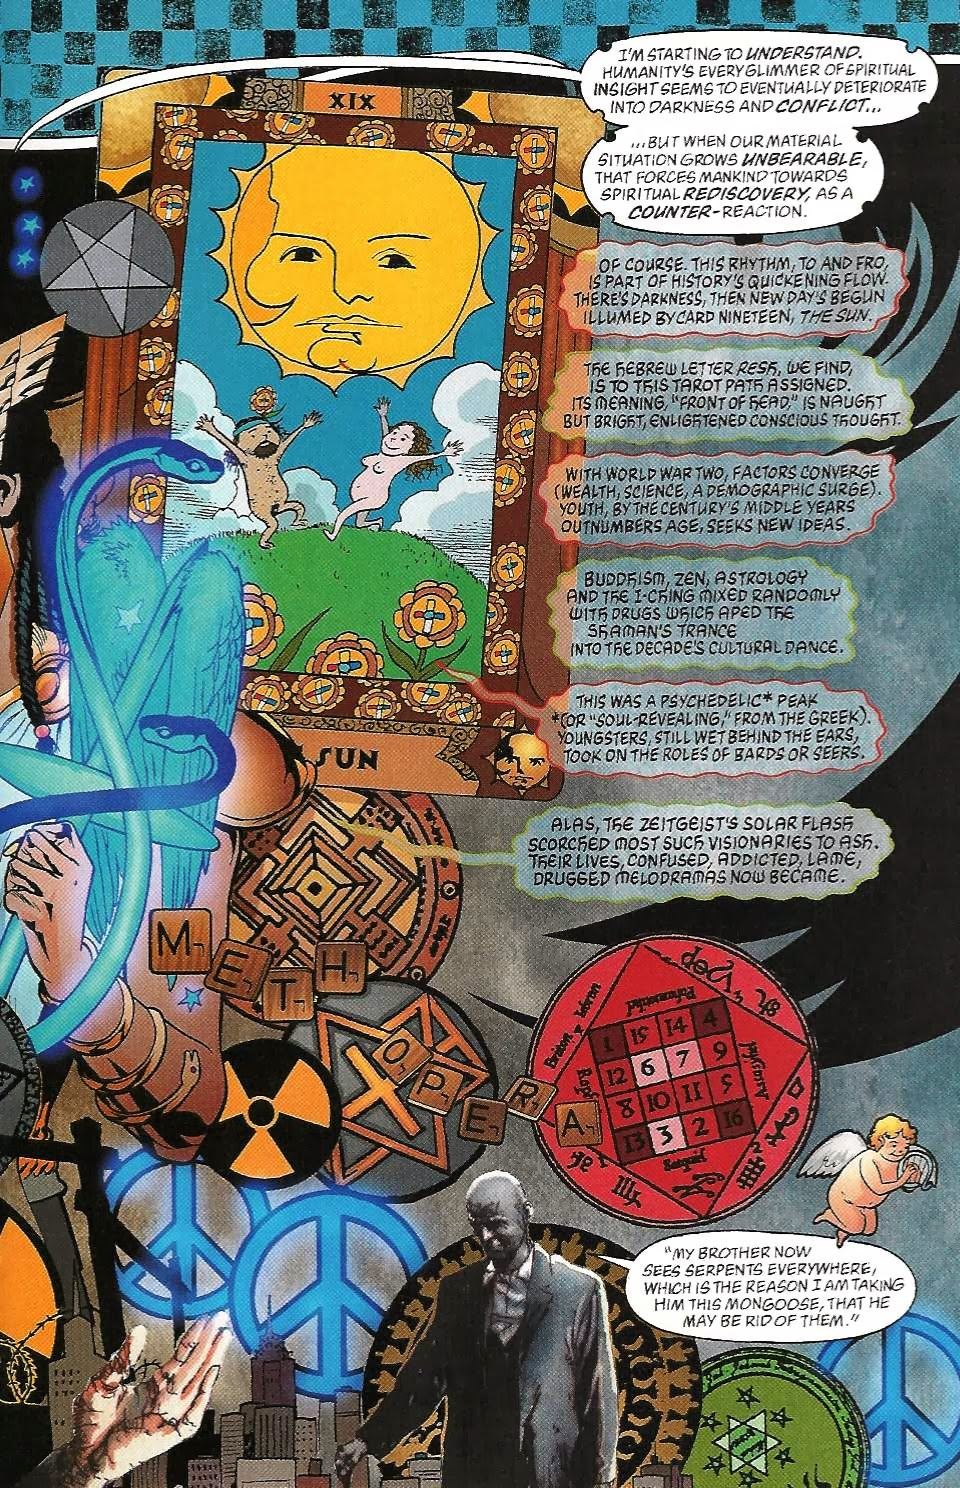 Figure 105: The Psychedelia Of The 1960s Depicted In Promethea #12 (alan  Moore And Jh Williams Iii, 2001)